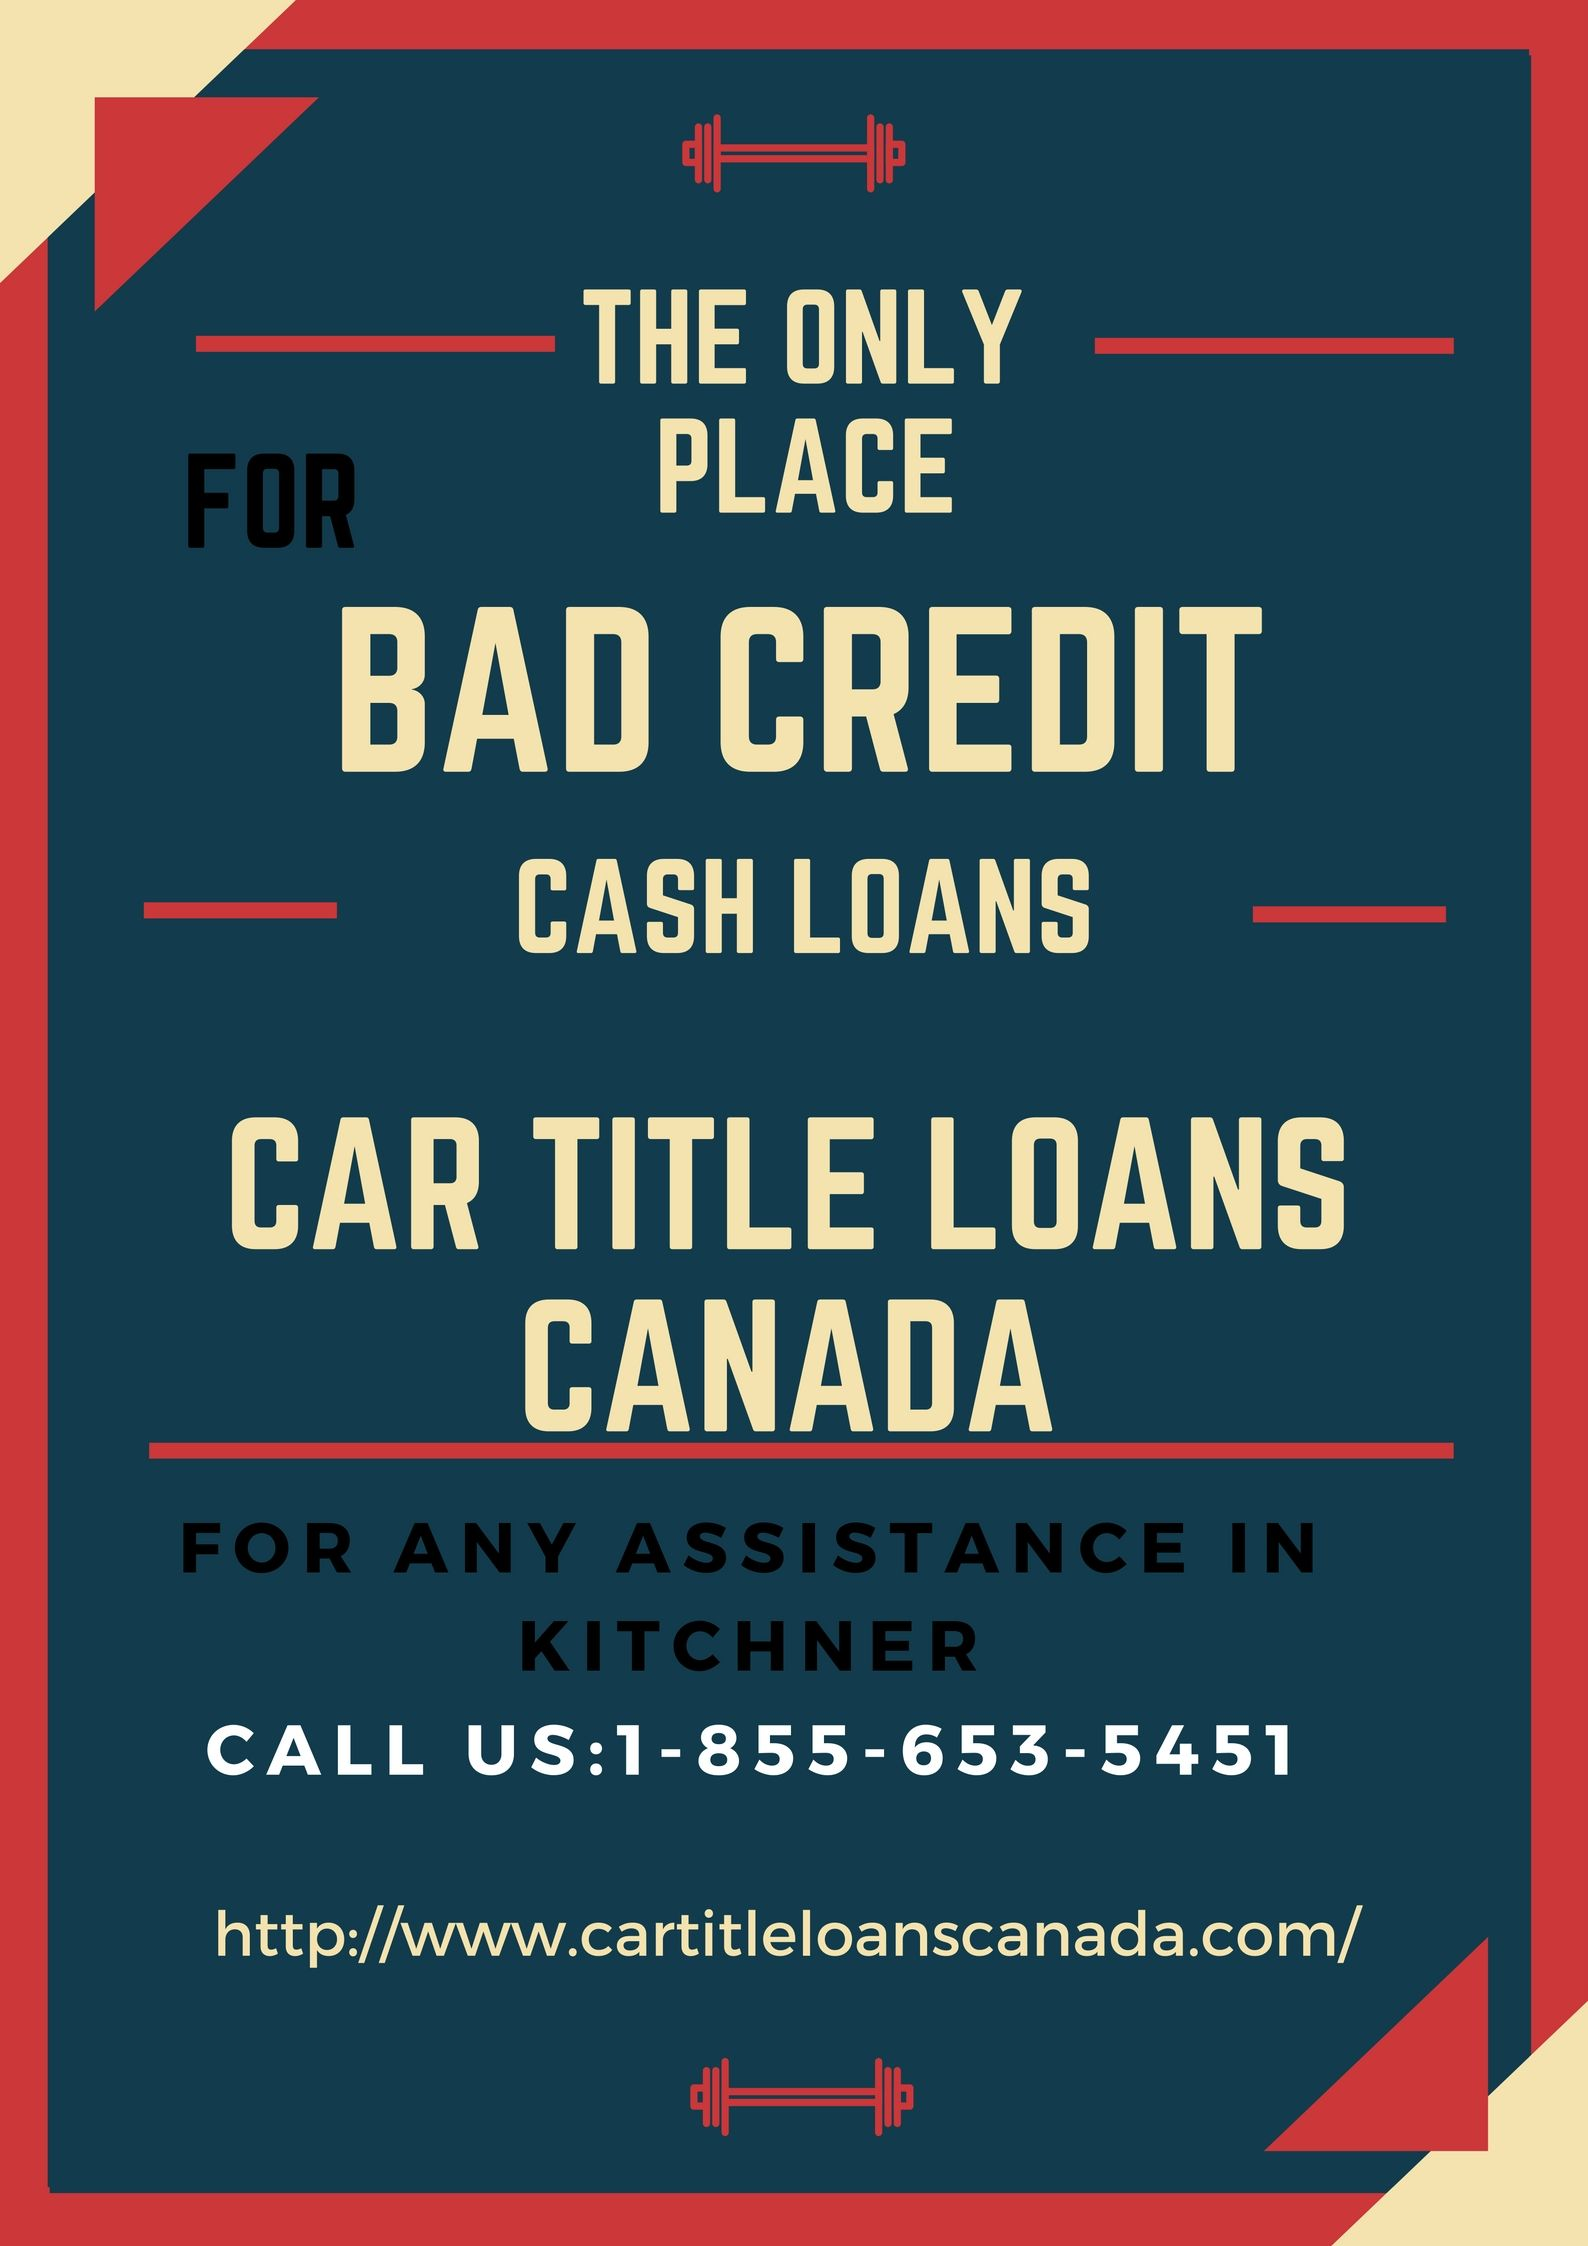 Cash loans in lakeland fl image 8